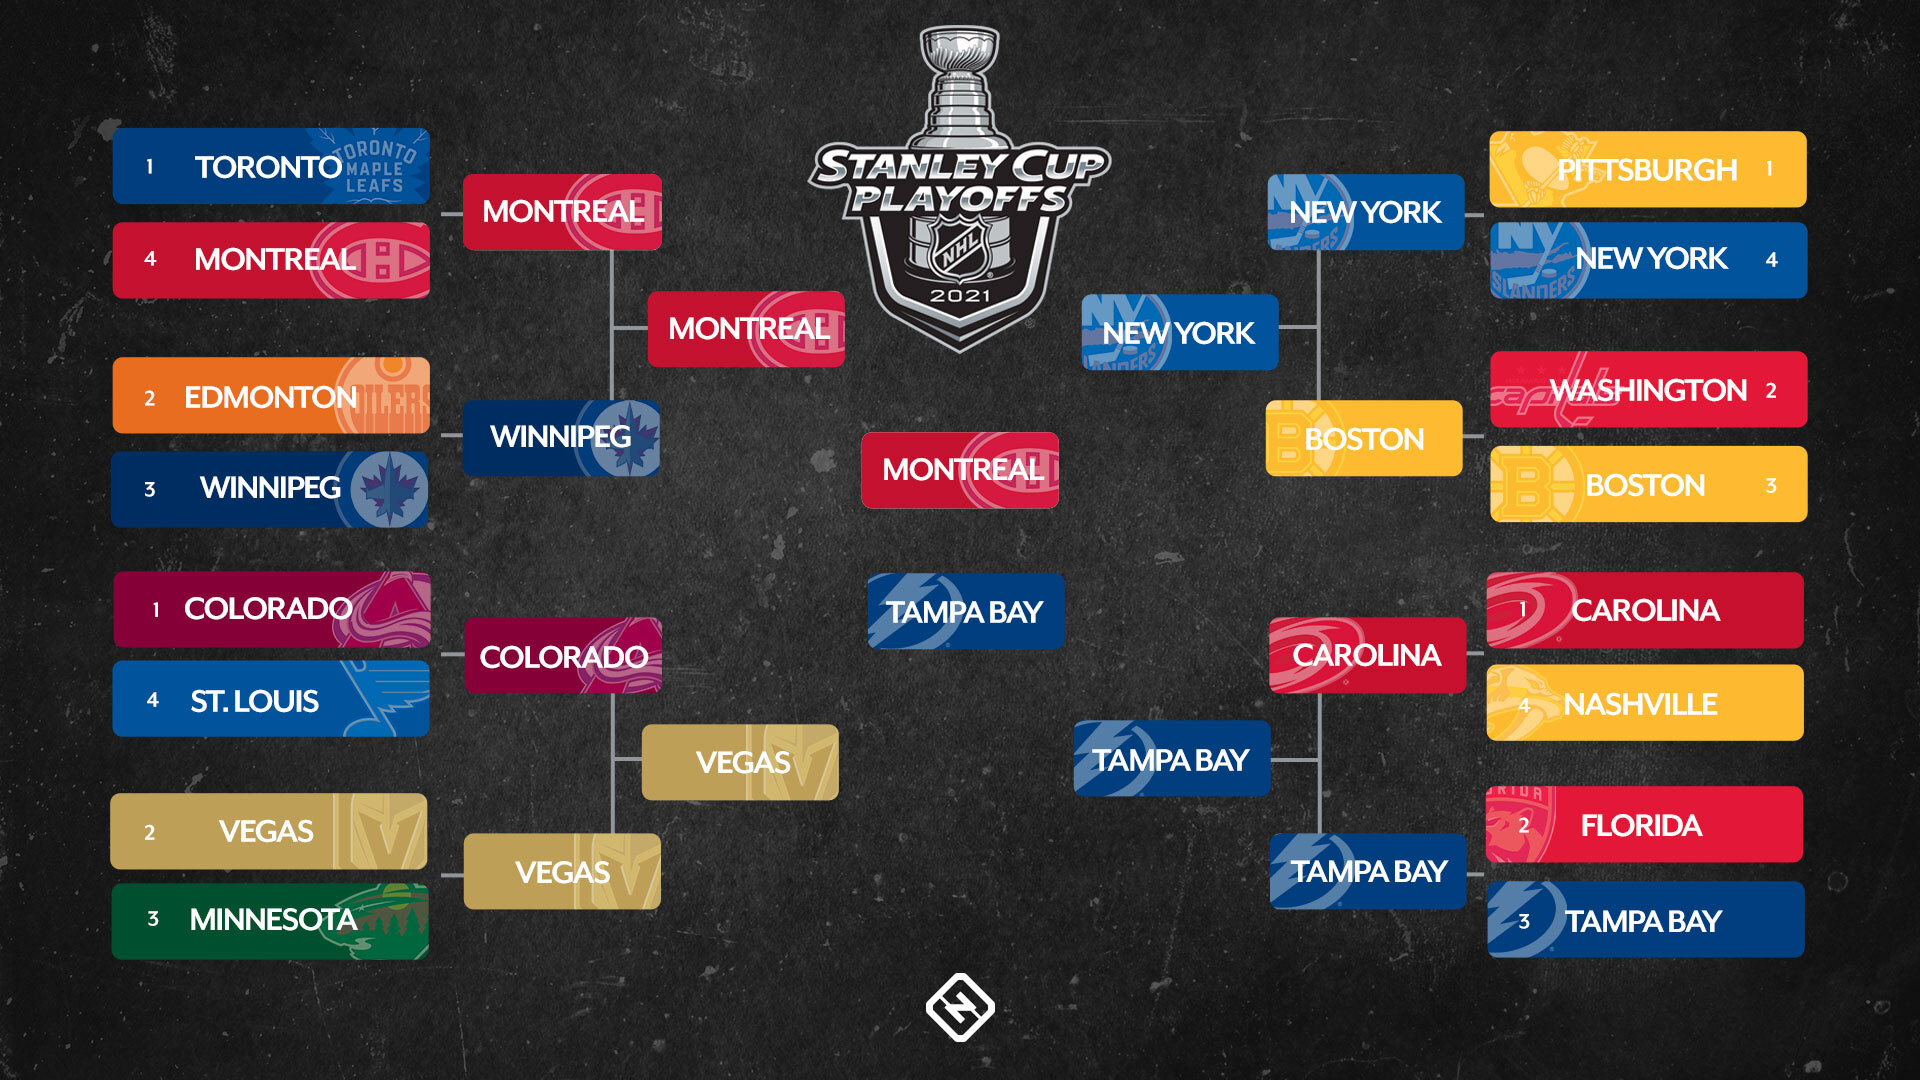 NHL playoffs schedule 2021: Full bracket, dates, times, TV channels for every series